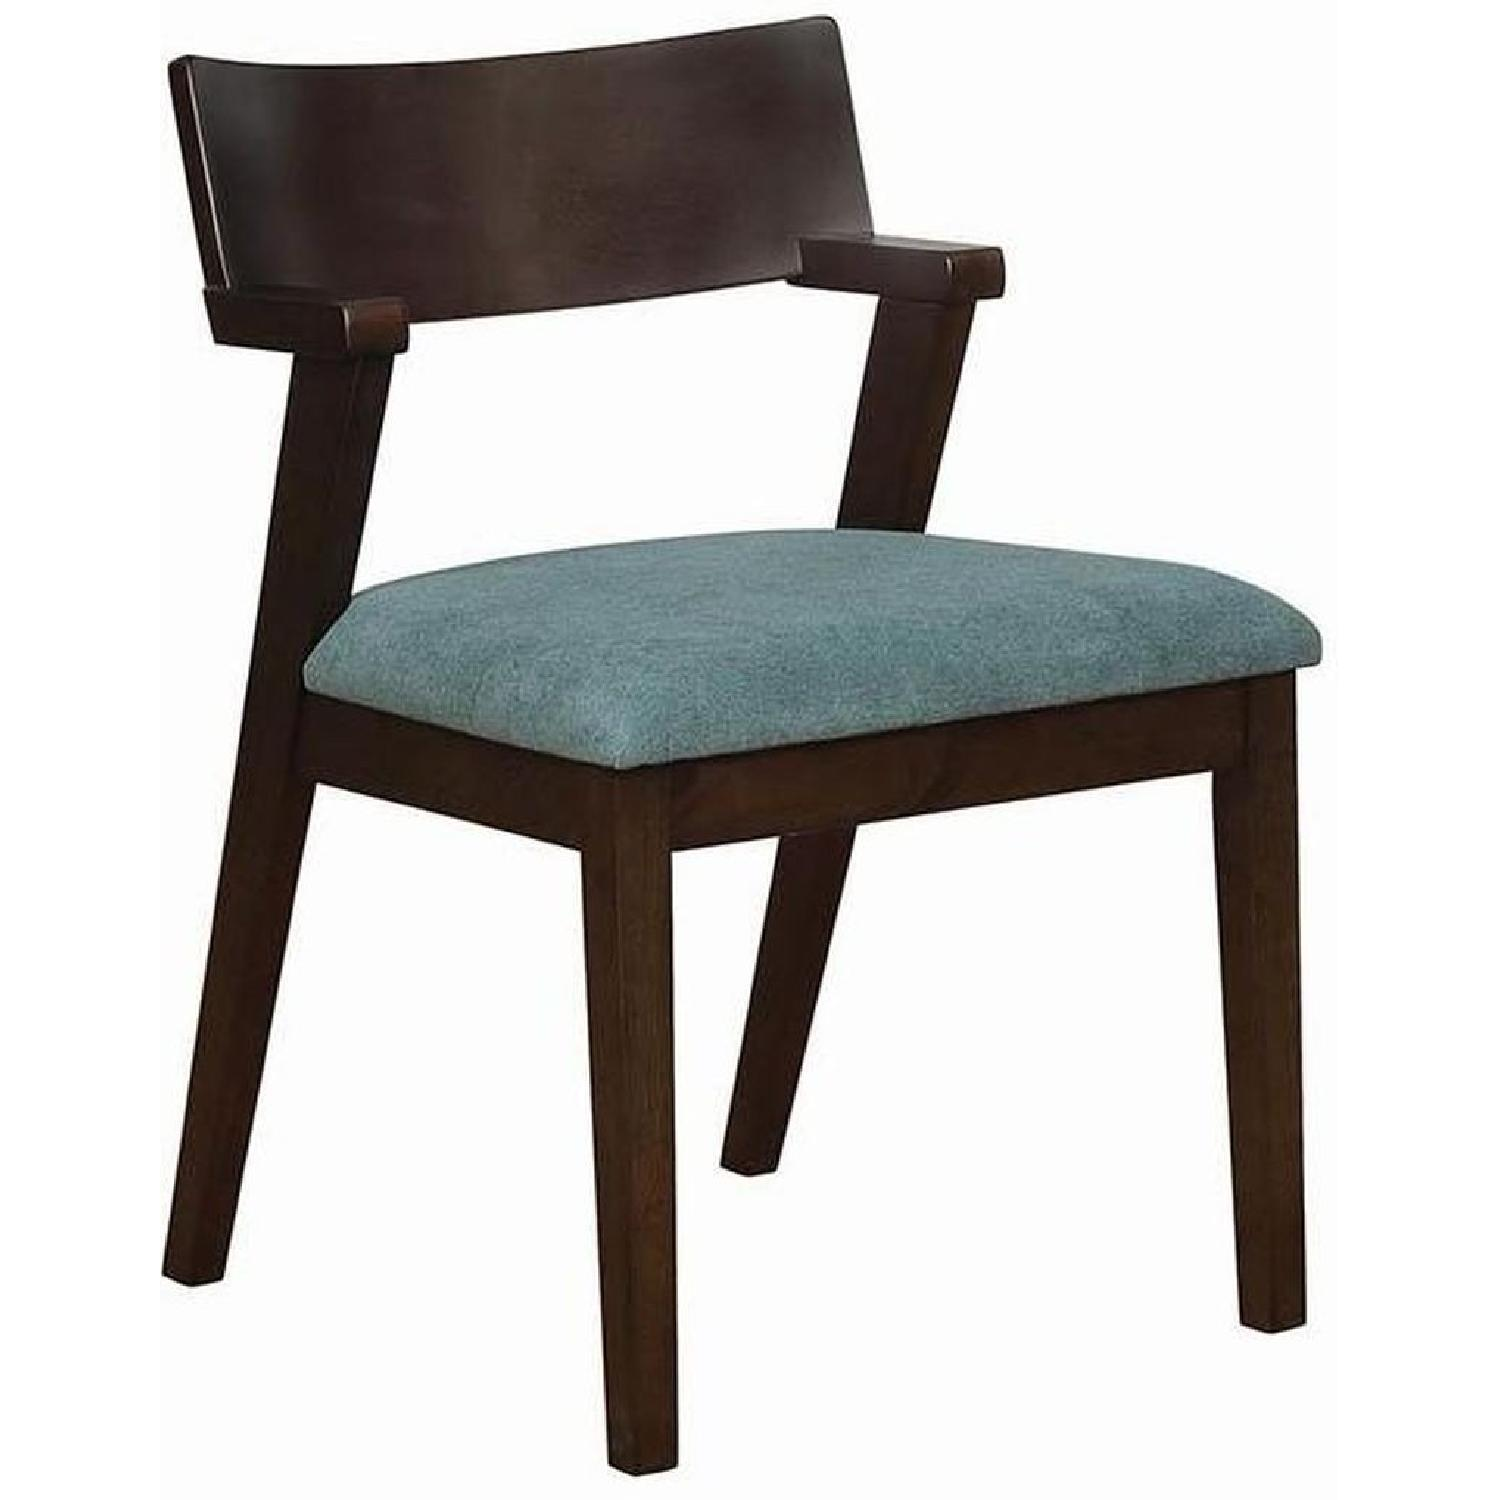 Mid Century Style Dining Chair w/ Teal Cushioned Seat - image-0